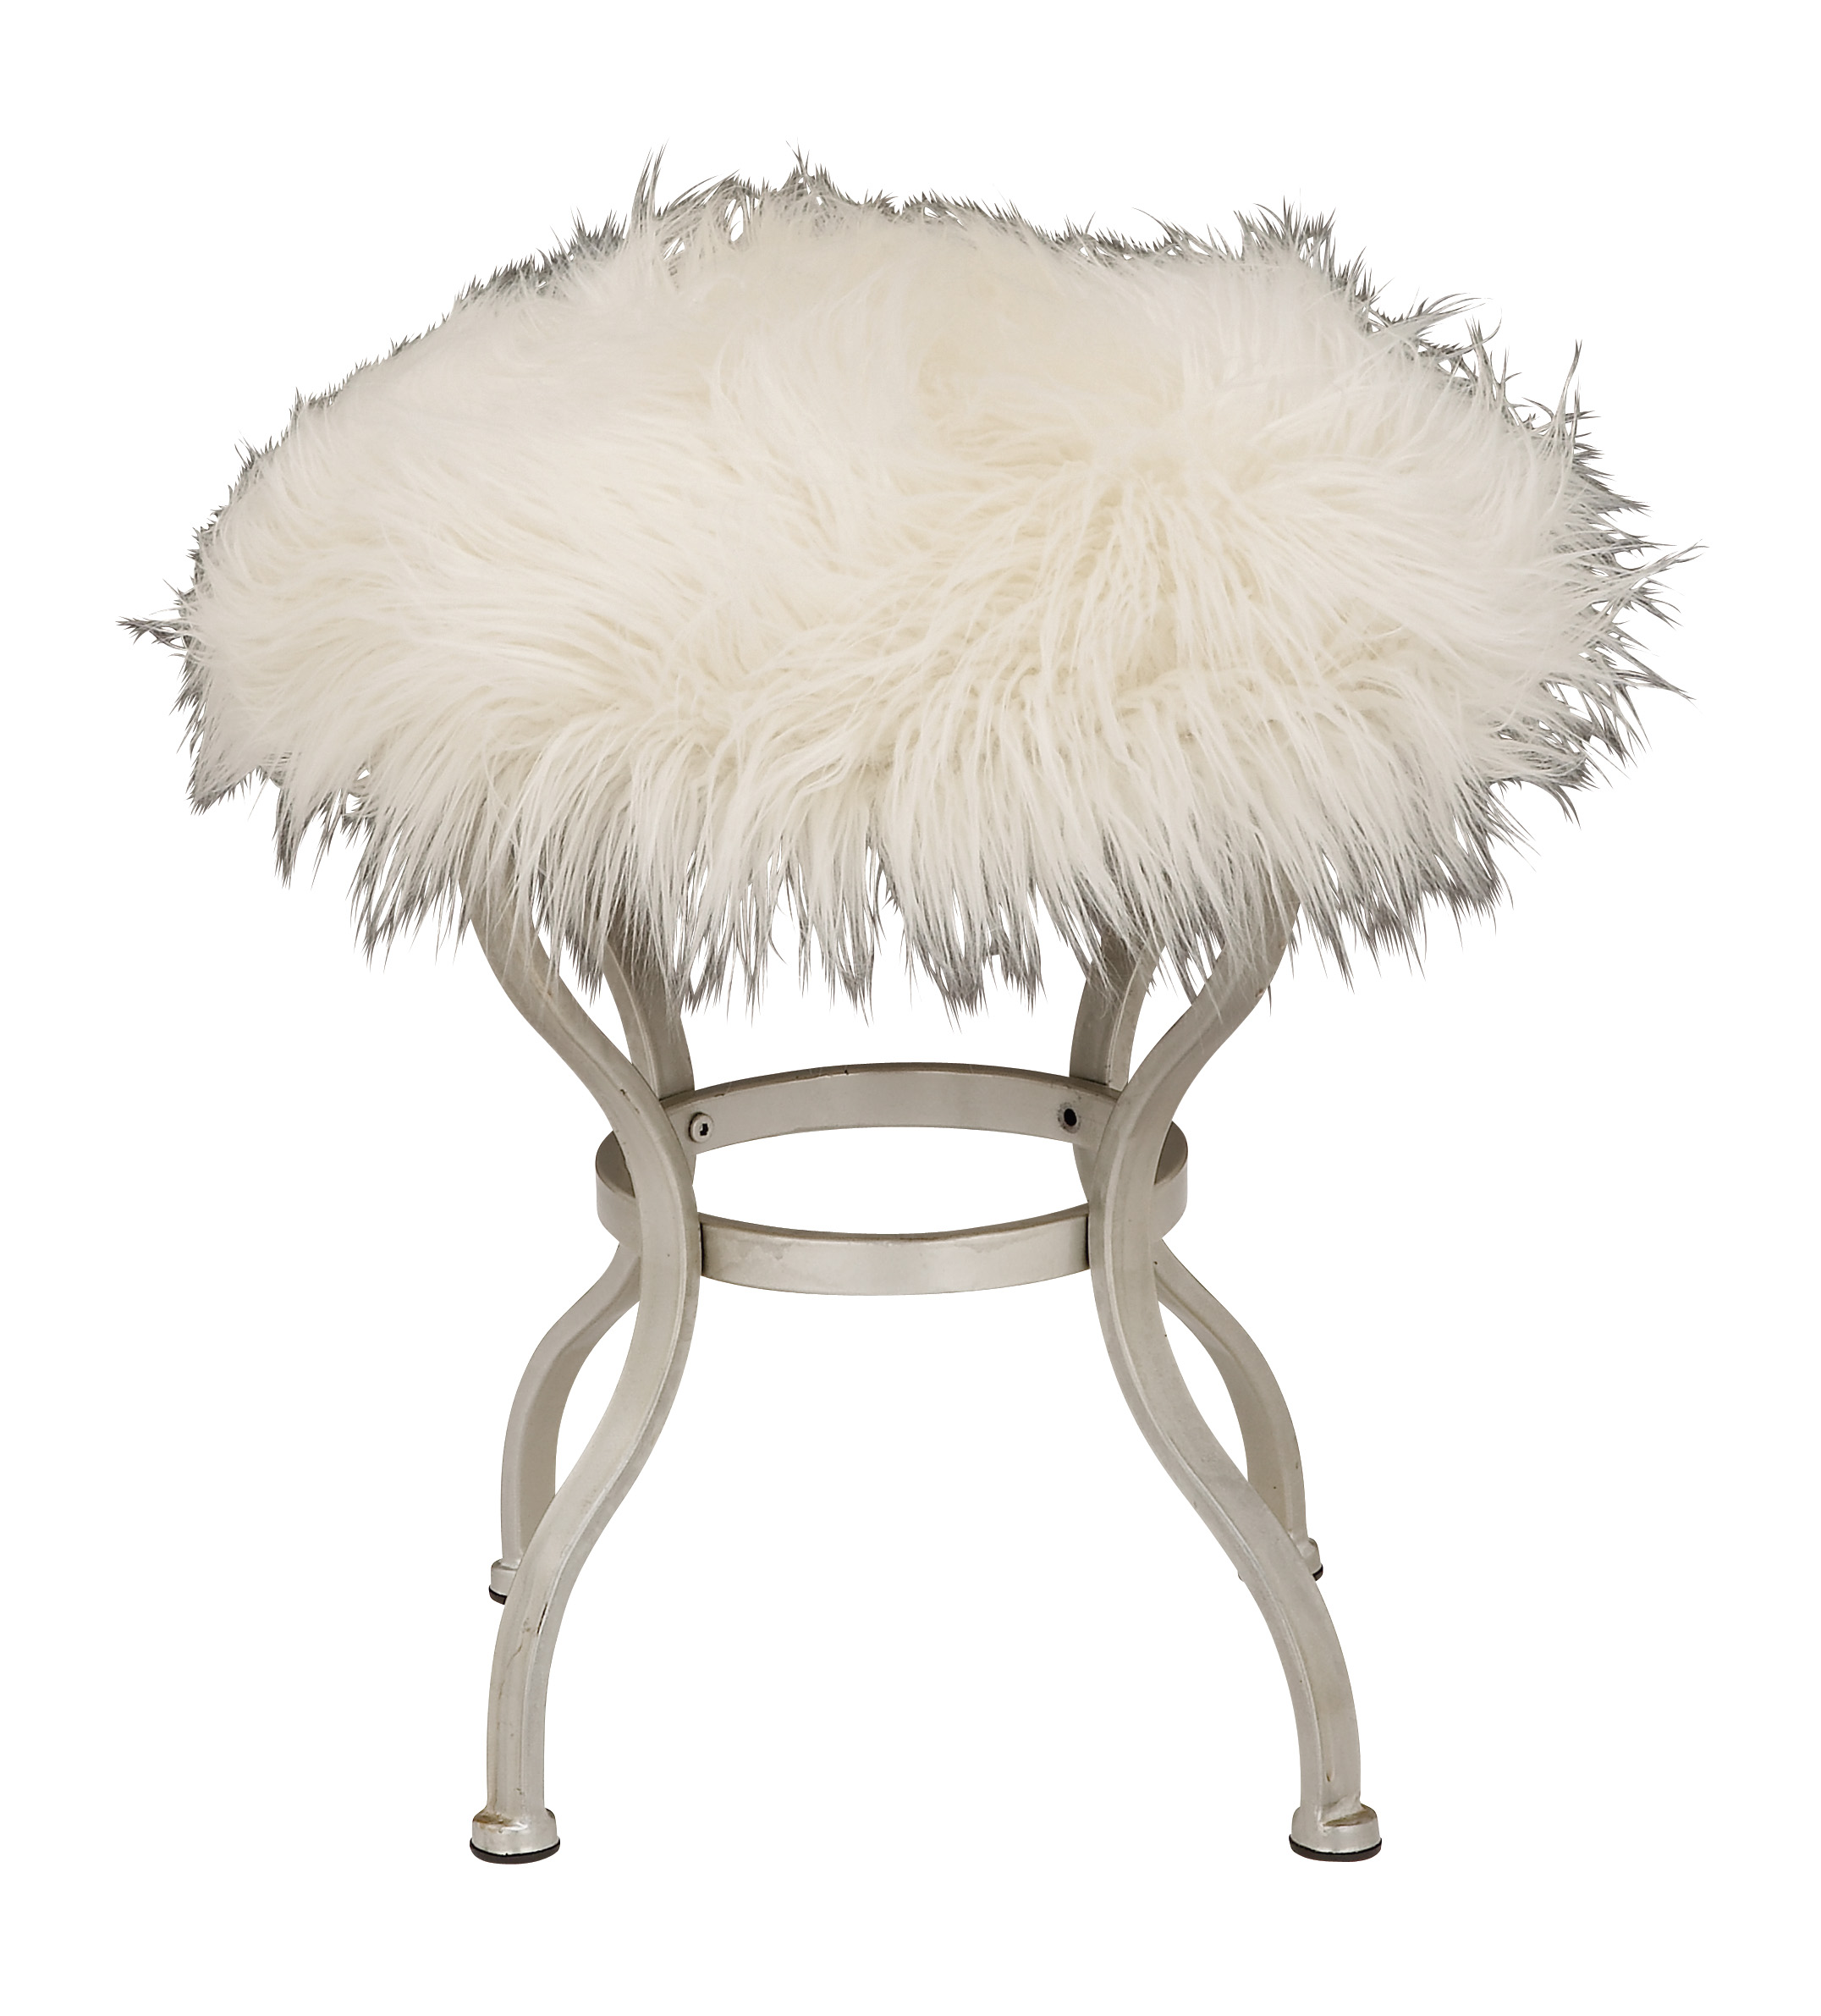 Decmode 21 X 20 Inch Contemporary Round White Fur Stool